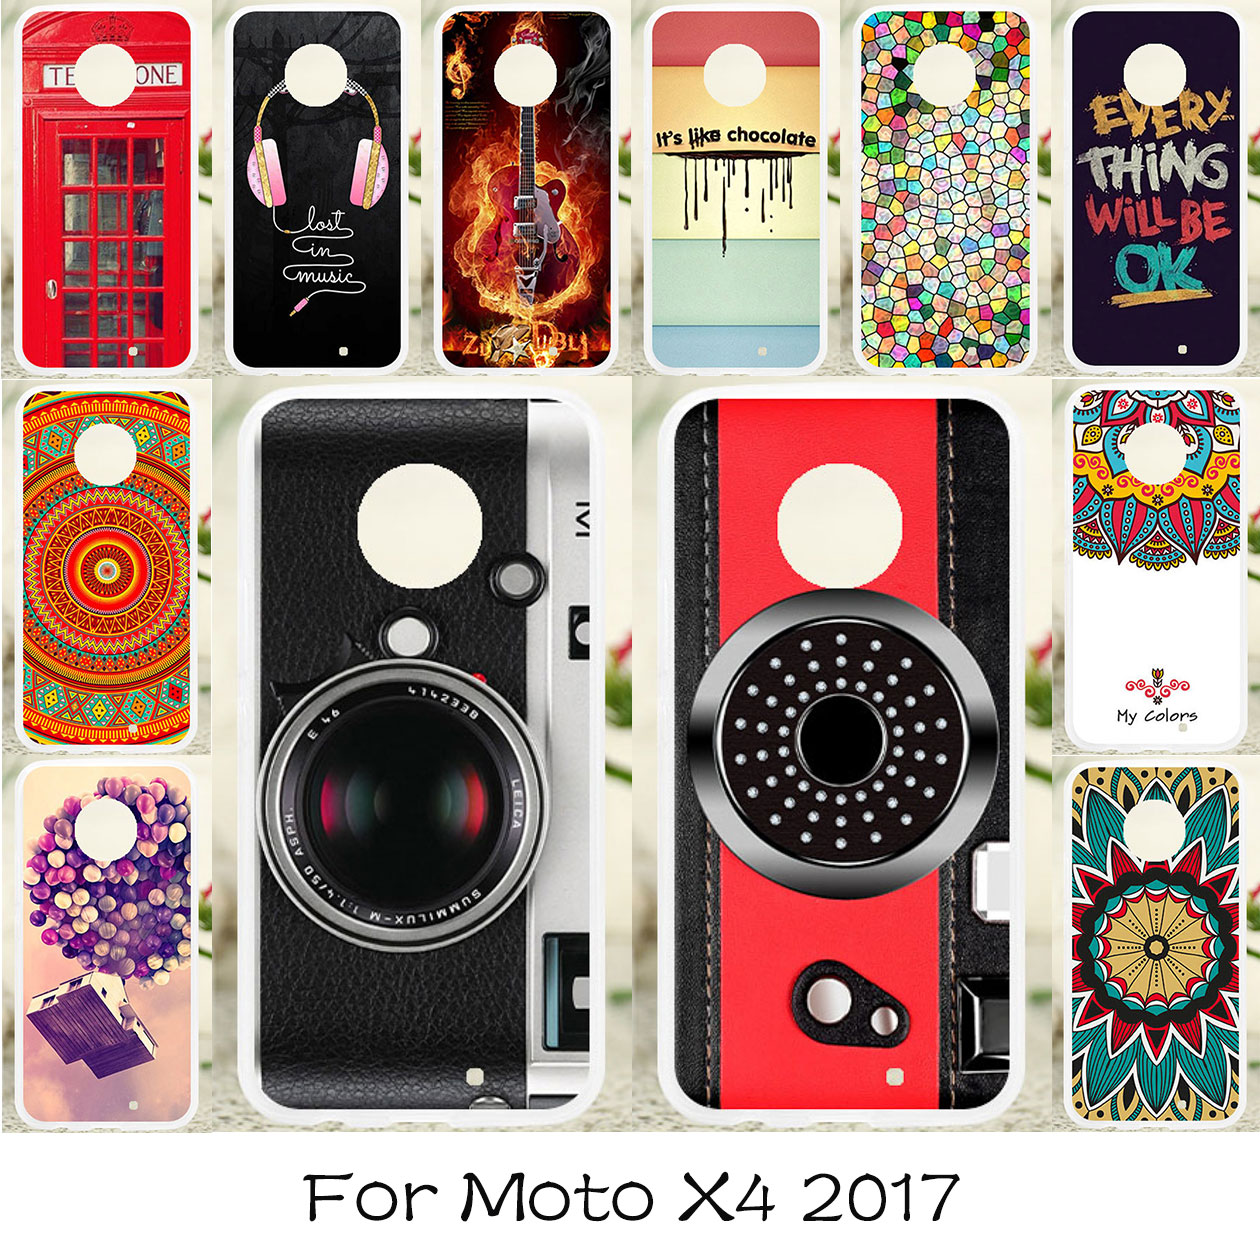 TAOYUNXI Soft TPU Case For Moto X4 2017 Cases Silicone Cover For Motorola X4 2017 Covers Flexible Colorful DIY Painted Fundas